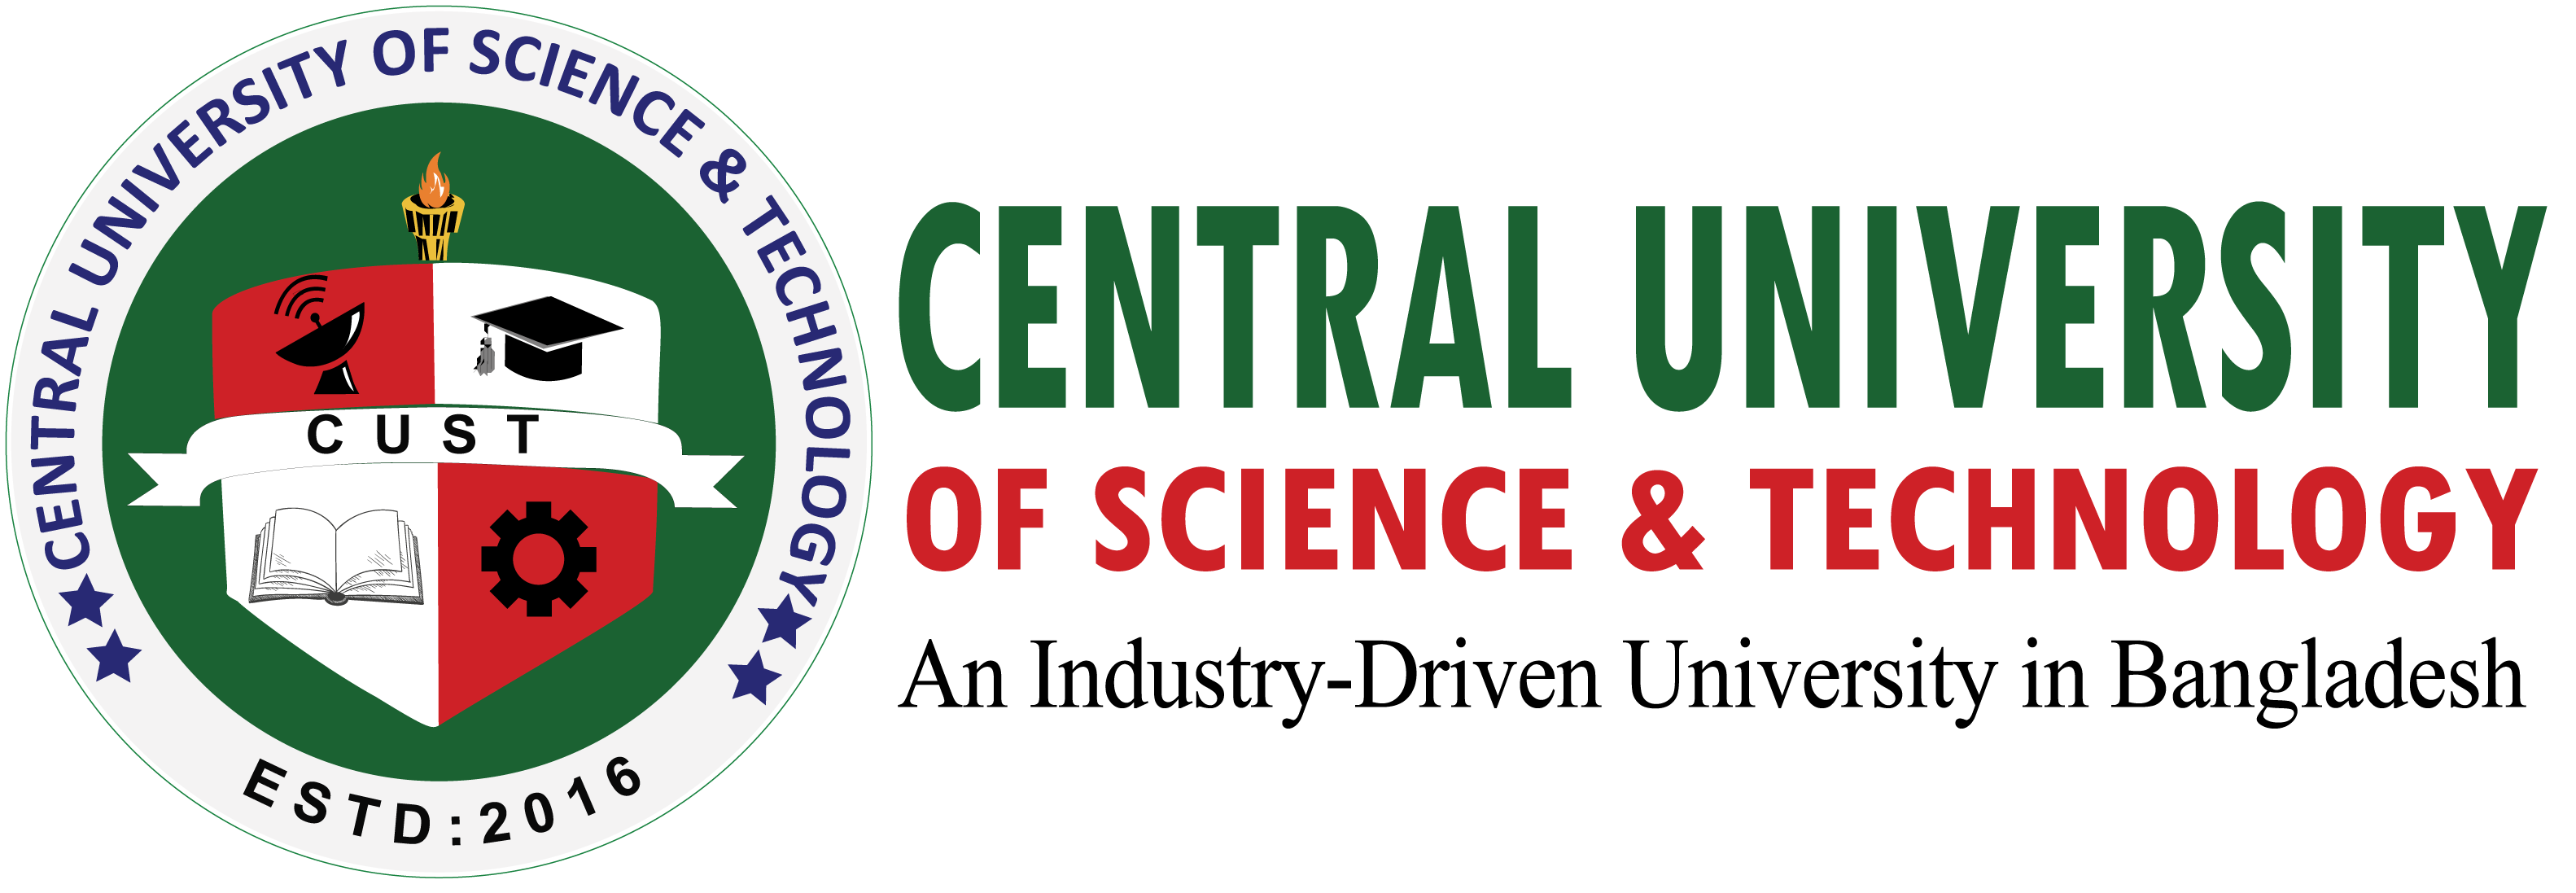 Student Migration - Central University of Science & Technology